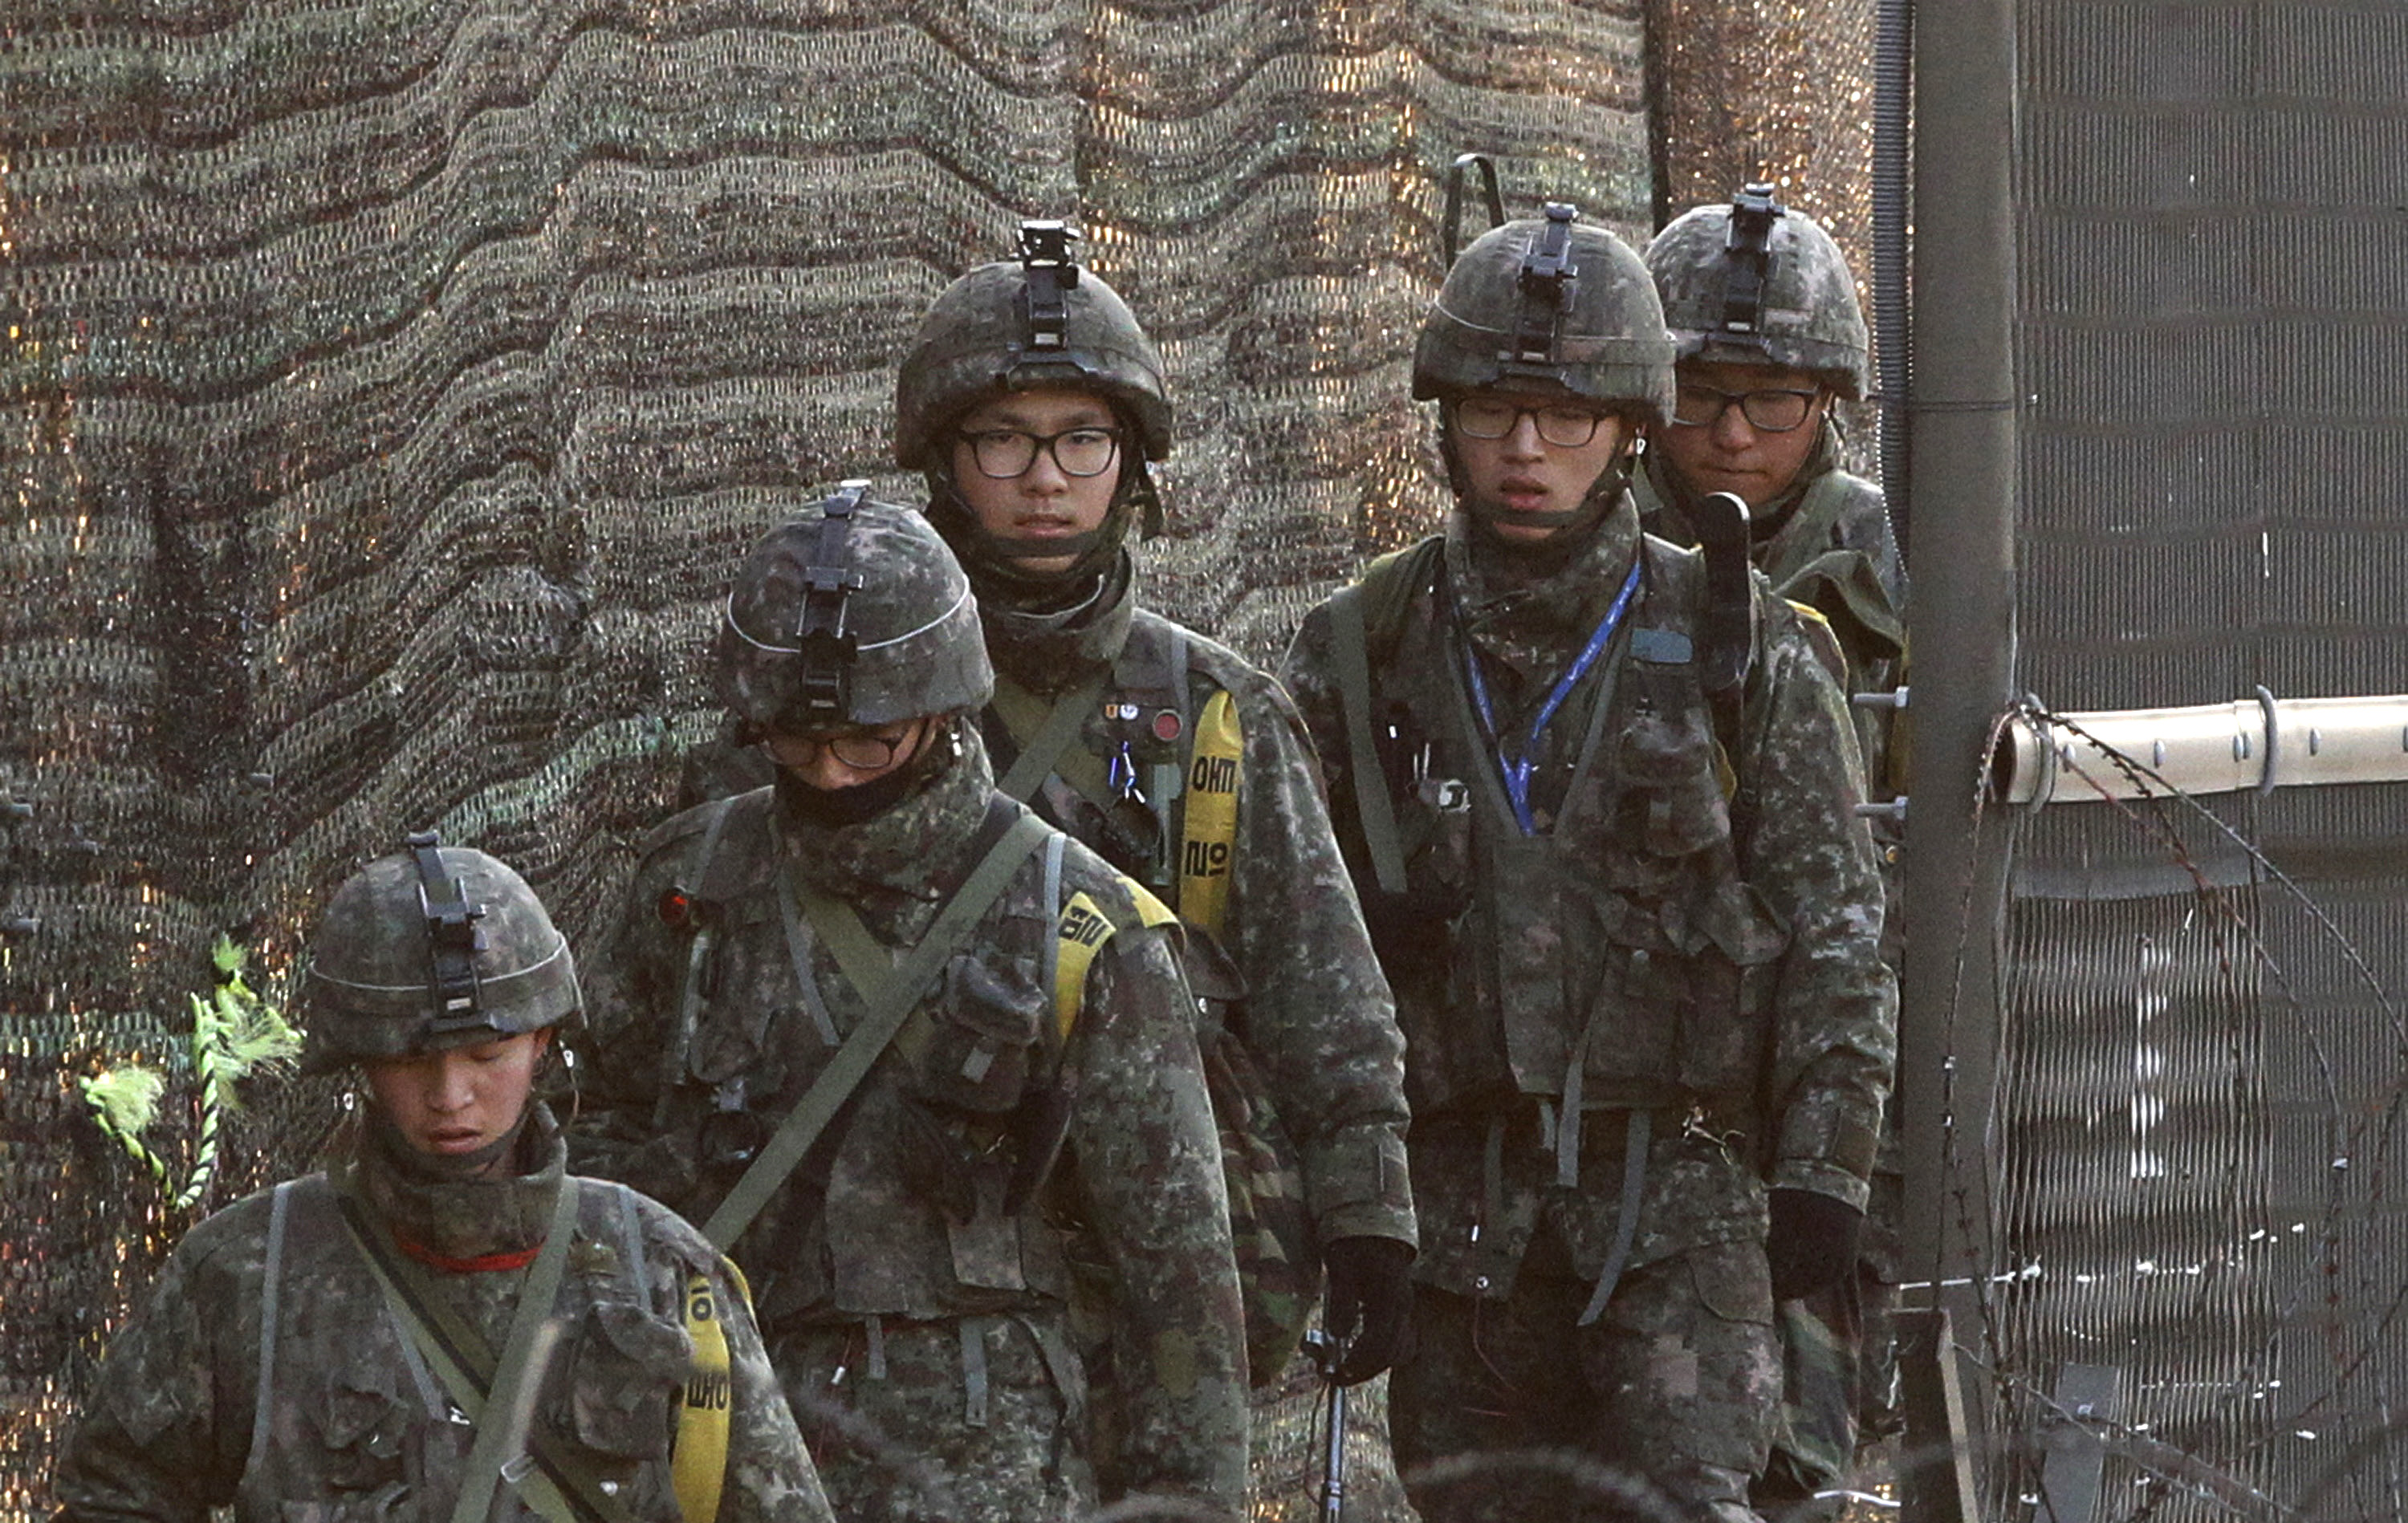 South Korean army soldiers patrol along a barbed-wire fence near the border village of Panmunjom in Paju, South Korea, Wednesday, March 27, 2013. (AP Photo/Ahn Young-joon)